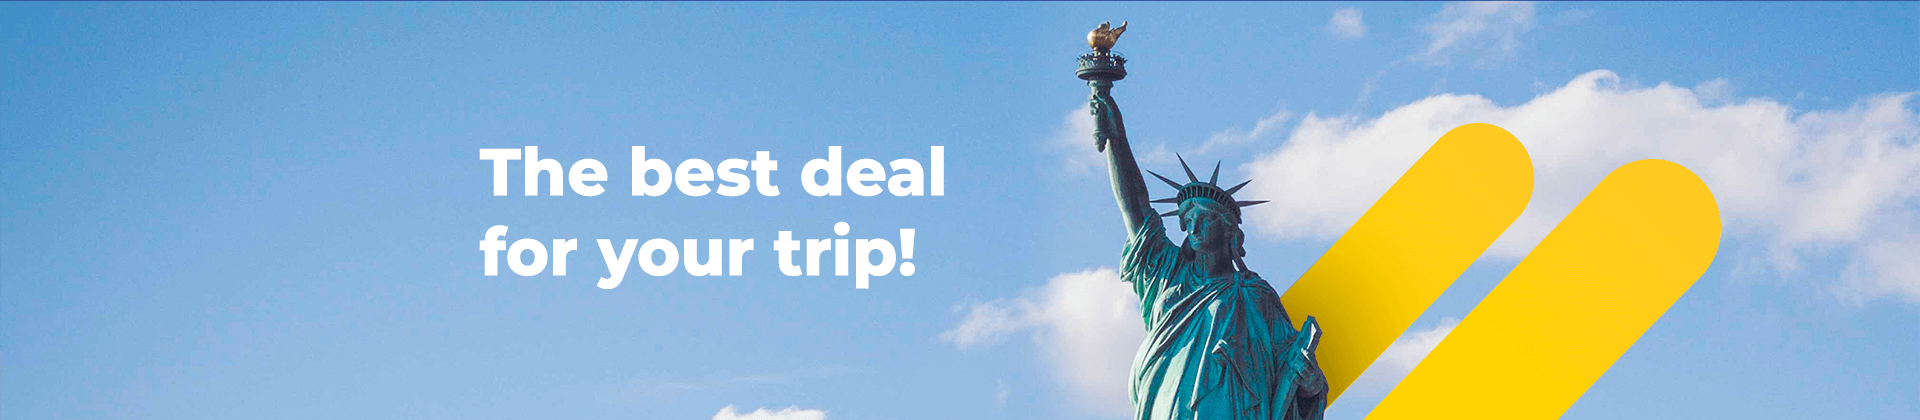 banner01-best-deal-for-your-trip (1)